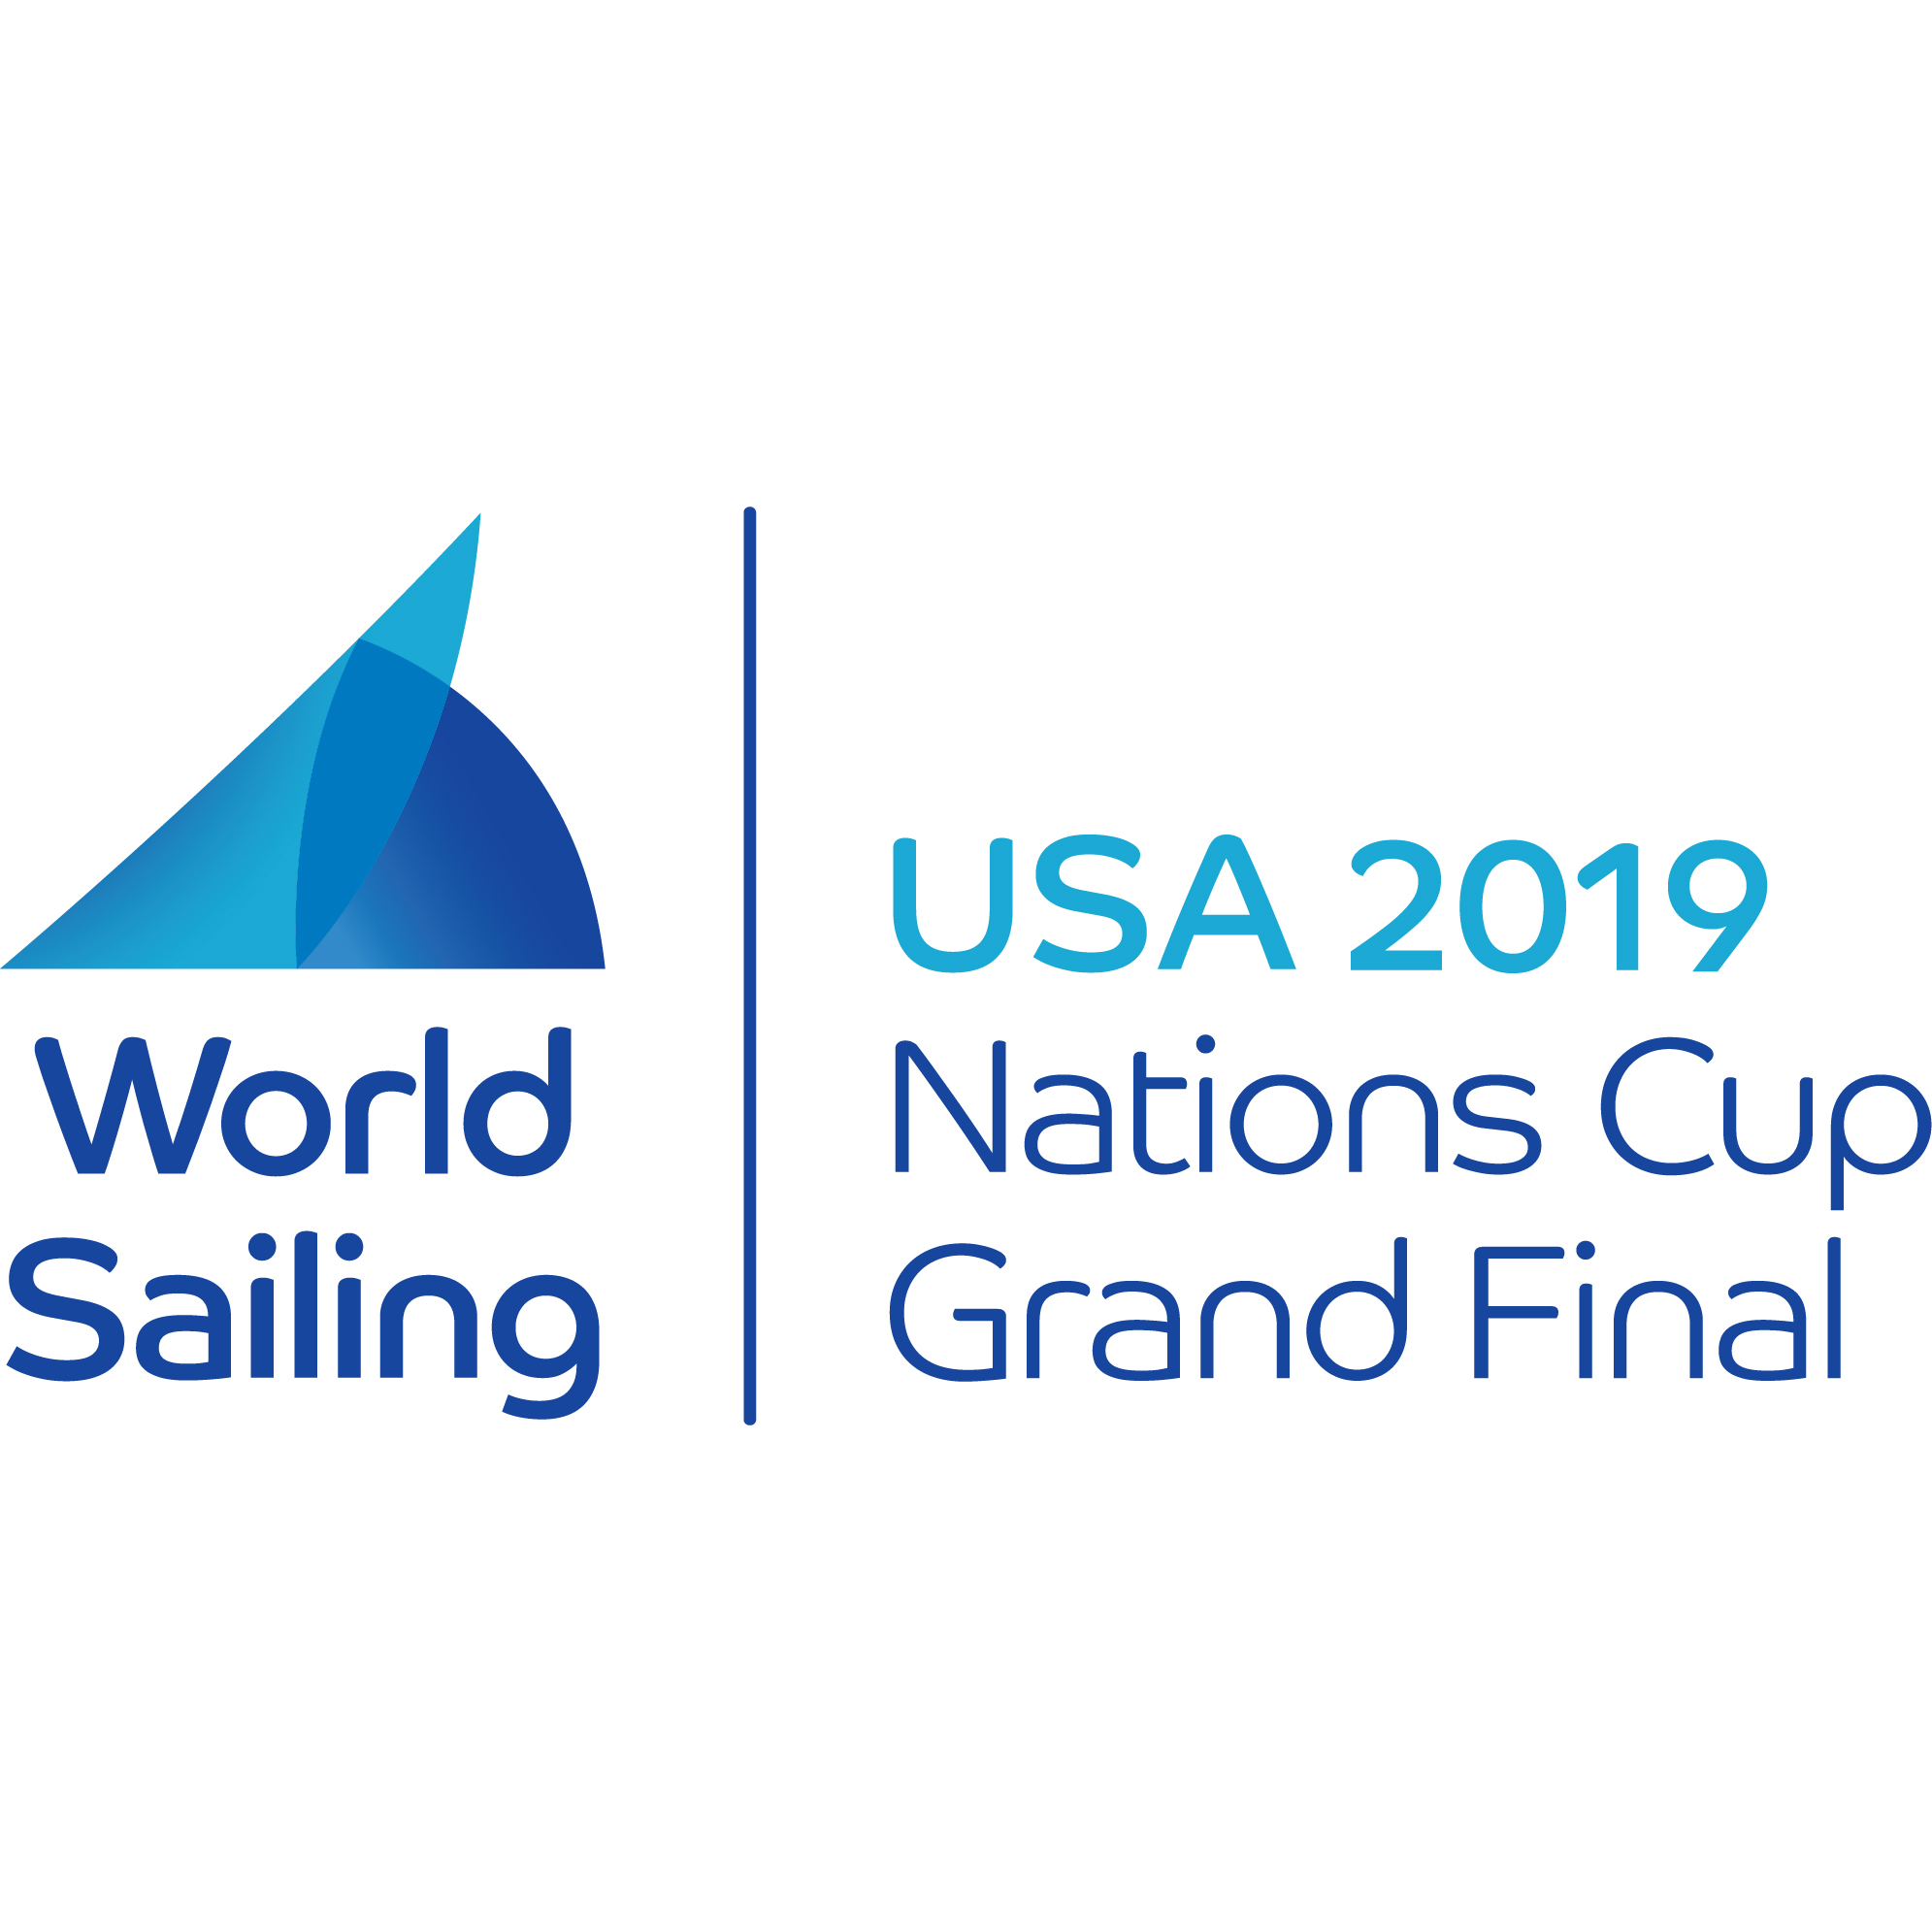 2019 World Sailing Nations Cup